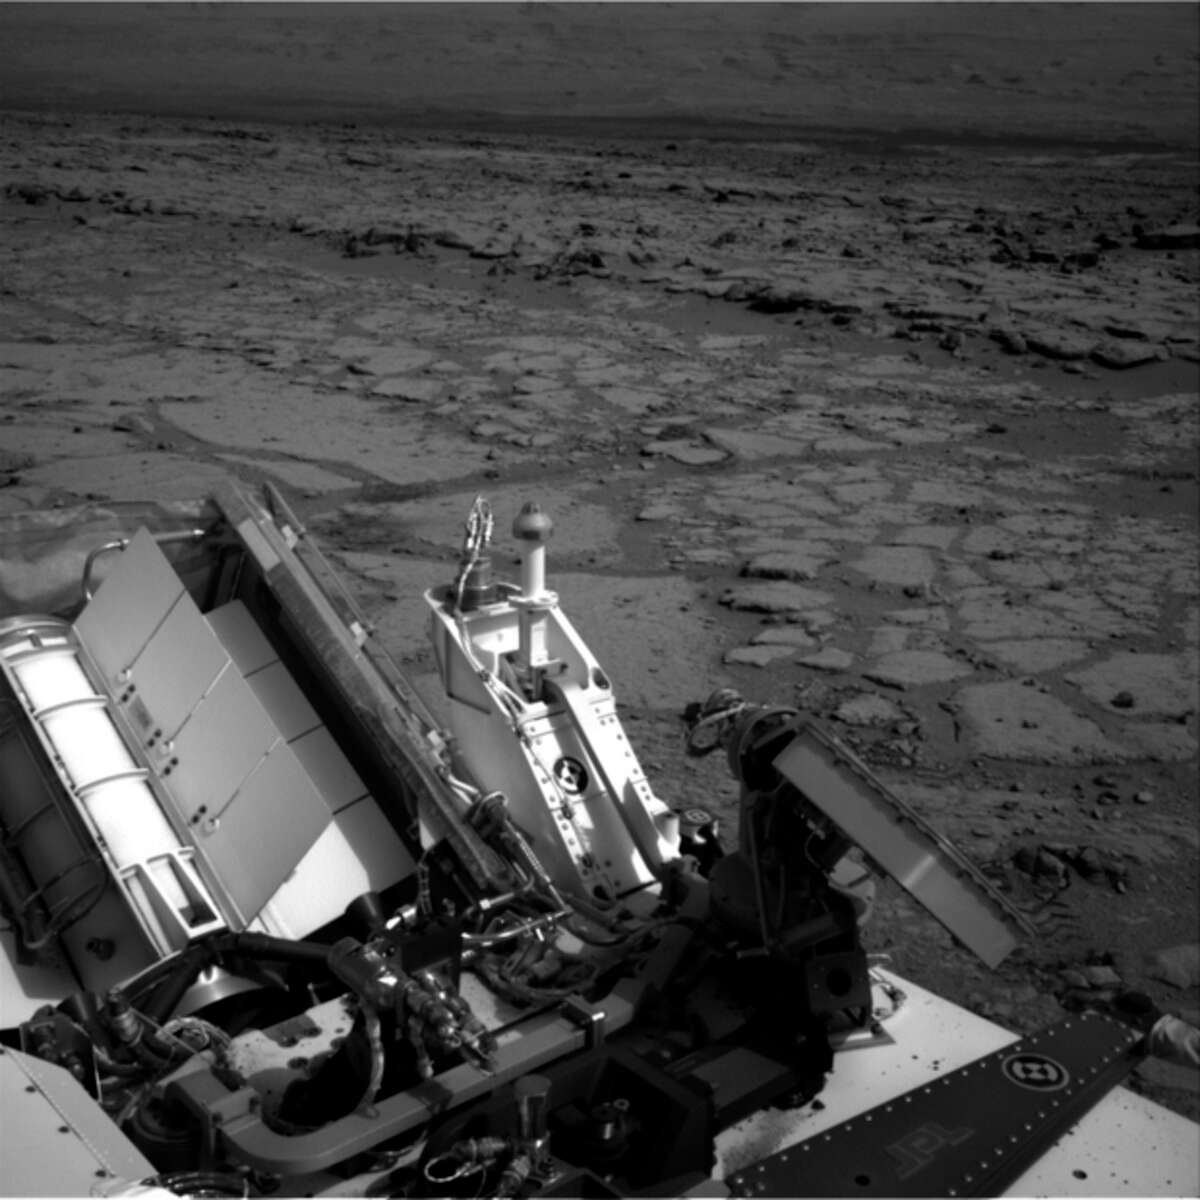 """FILE - This Dec. 12, 2012 file image provided by NASA shows the Mars rover Curiosity at a pit stop, a shallow depression called """"Yellowknife Bay."""" It took the image on the 125th Martian day, or sol, of the mission (Dec. 12, 2012), just after finishing that sol's drive. The Sol 125 drive entered Yellowknife Bay and covered about 86 feet (26.1 meters). The descent into the basin crossed a step about 2 feet (half a meter) high, visible in the upper half of this image. Curiosity will now head for Mount Sharp in mid-February after it drills into its first rock. (AP Photo/NASA/JPL-Caltech, File)"""